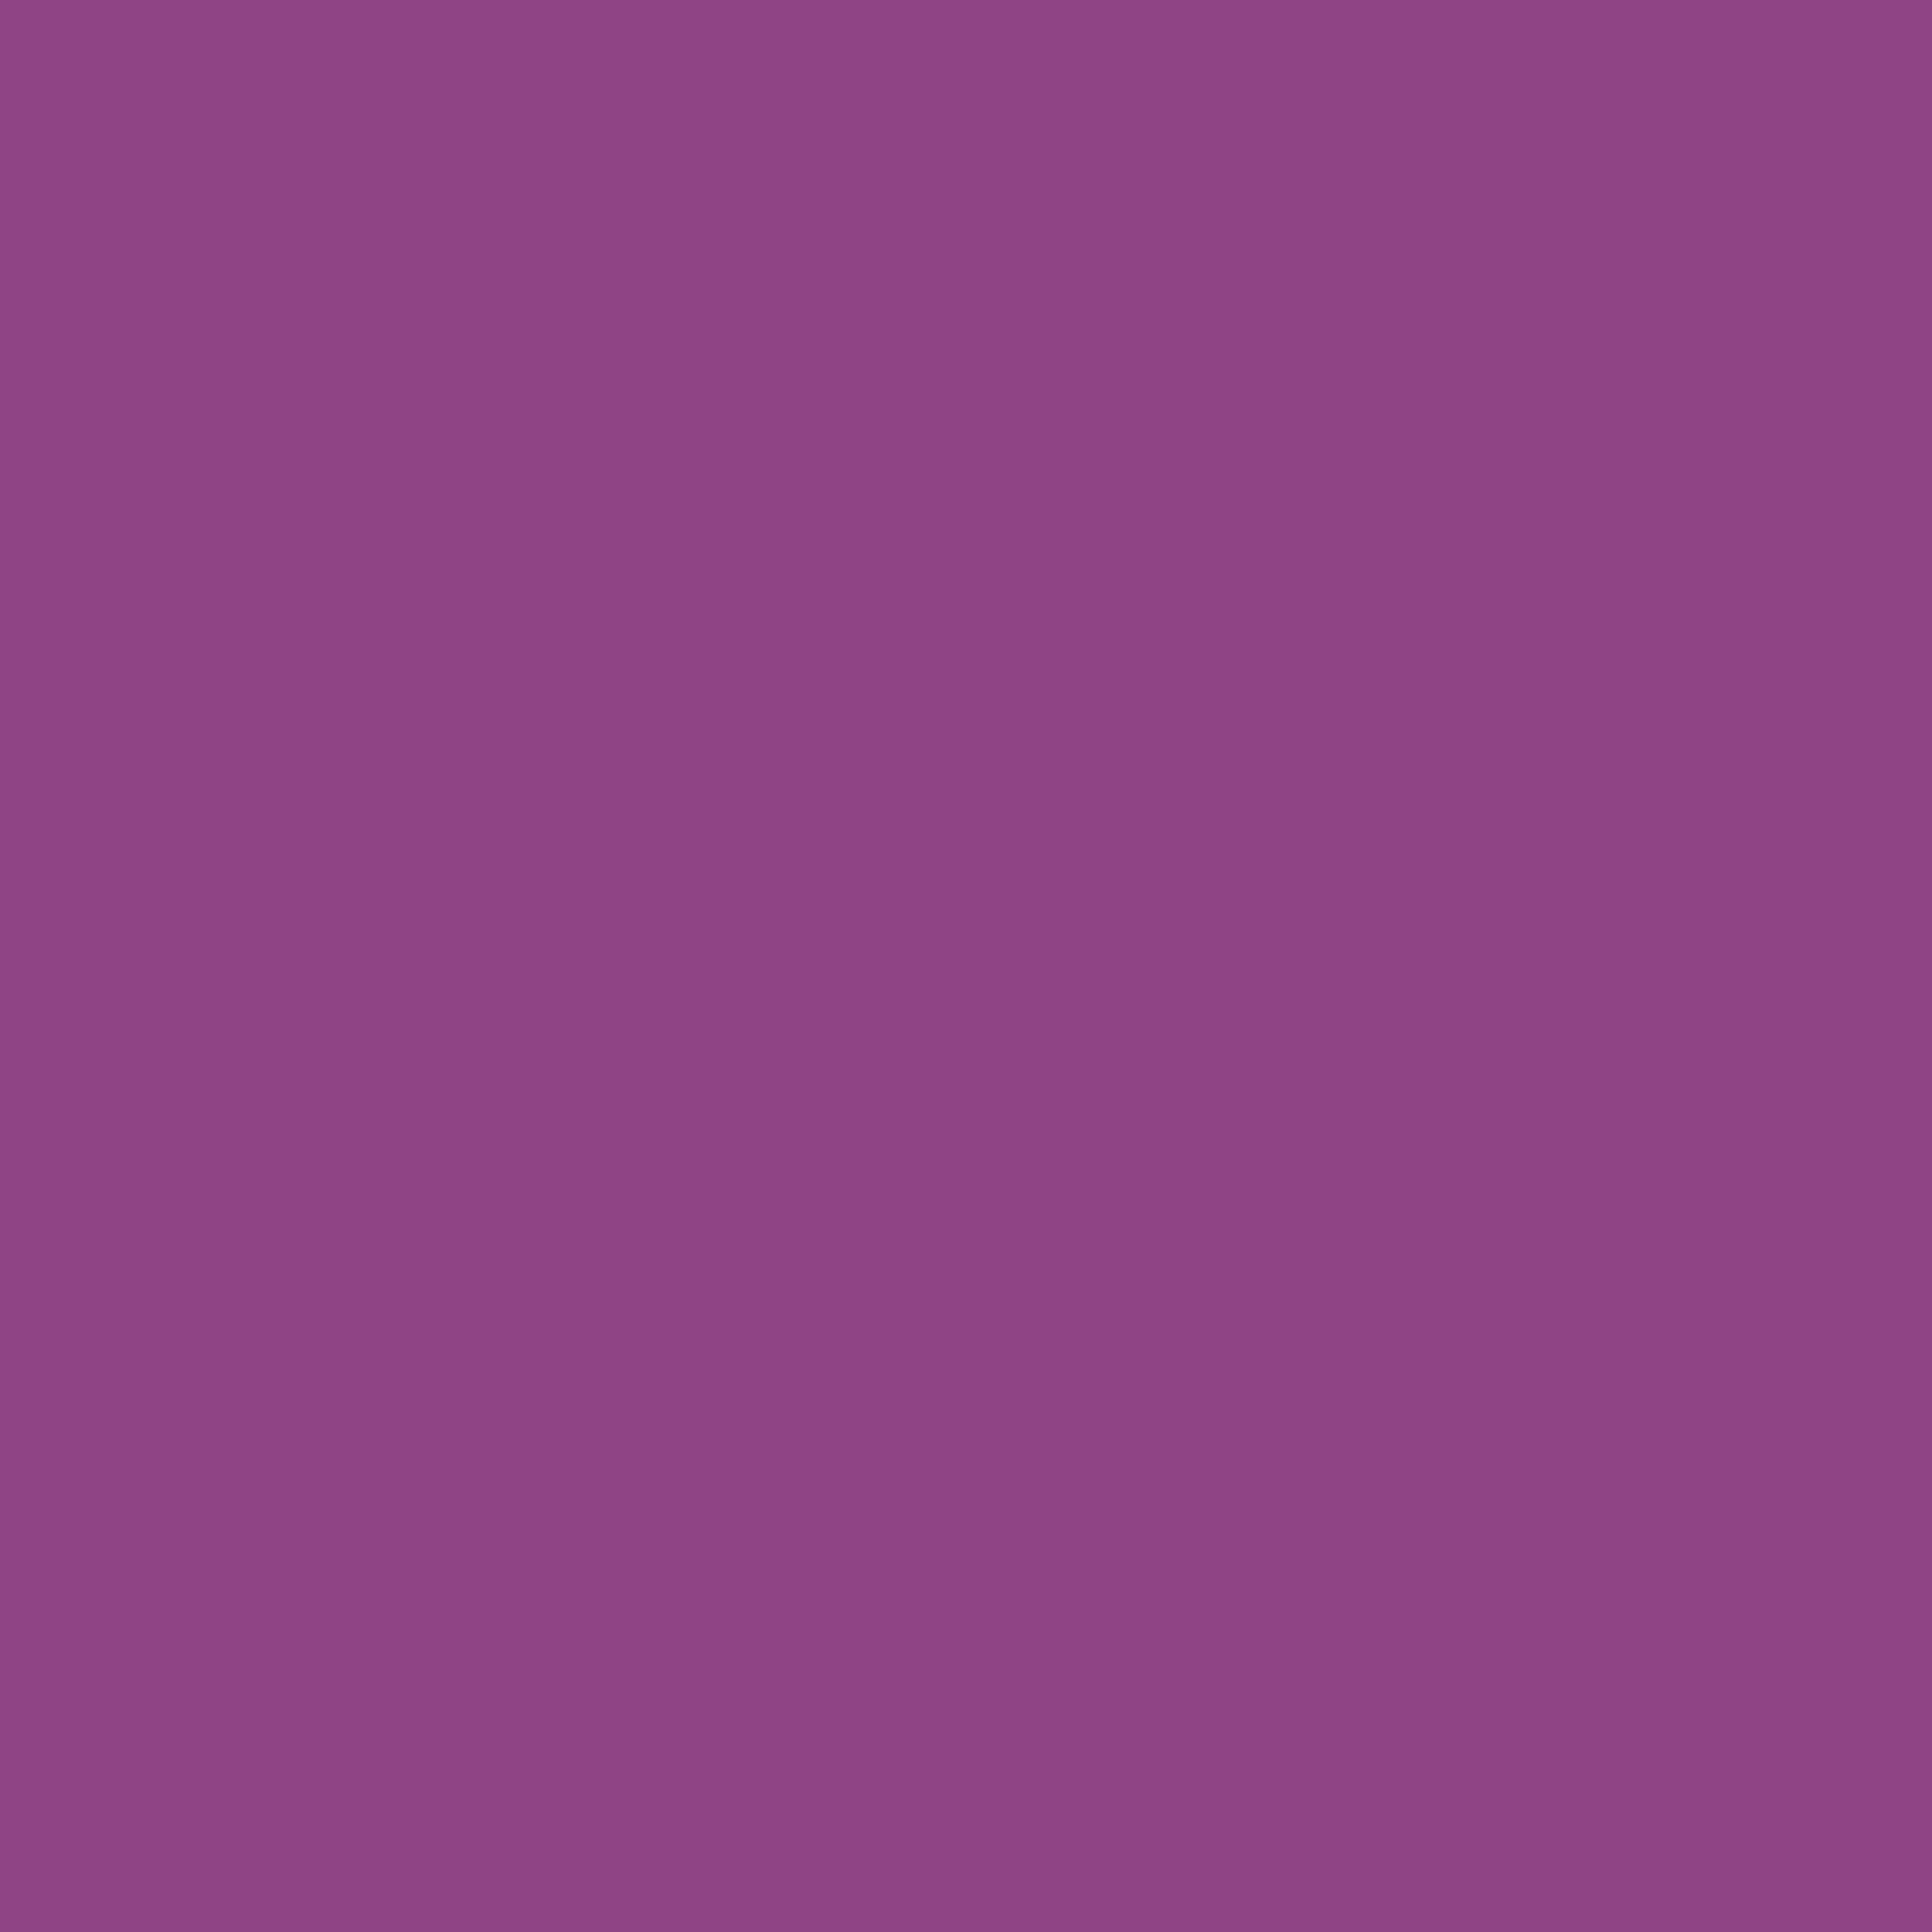 3600x3600 Plum Traditional Solid Color Background